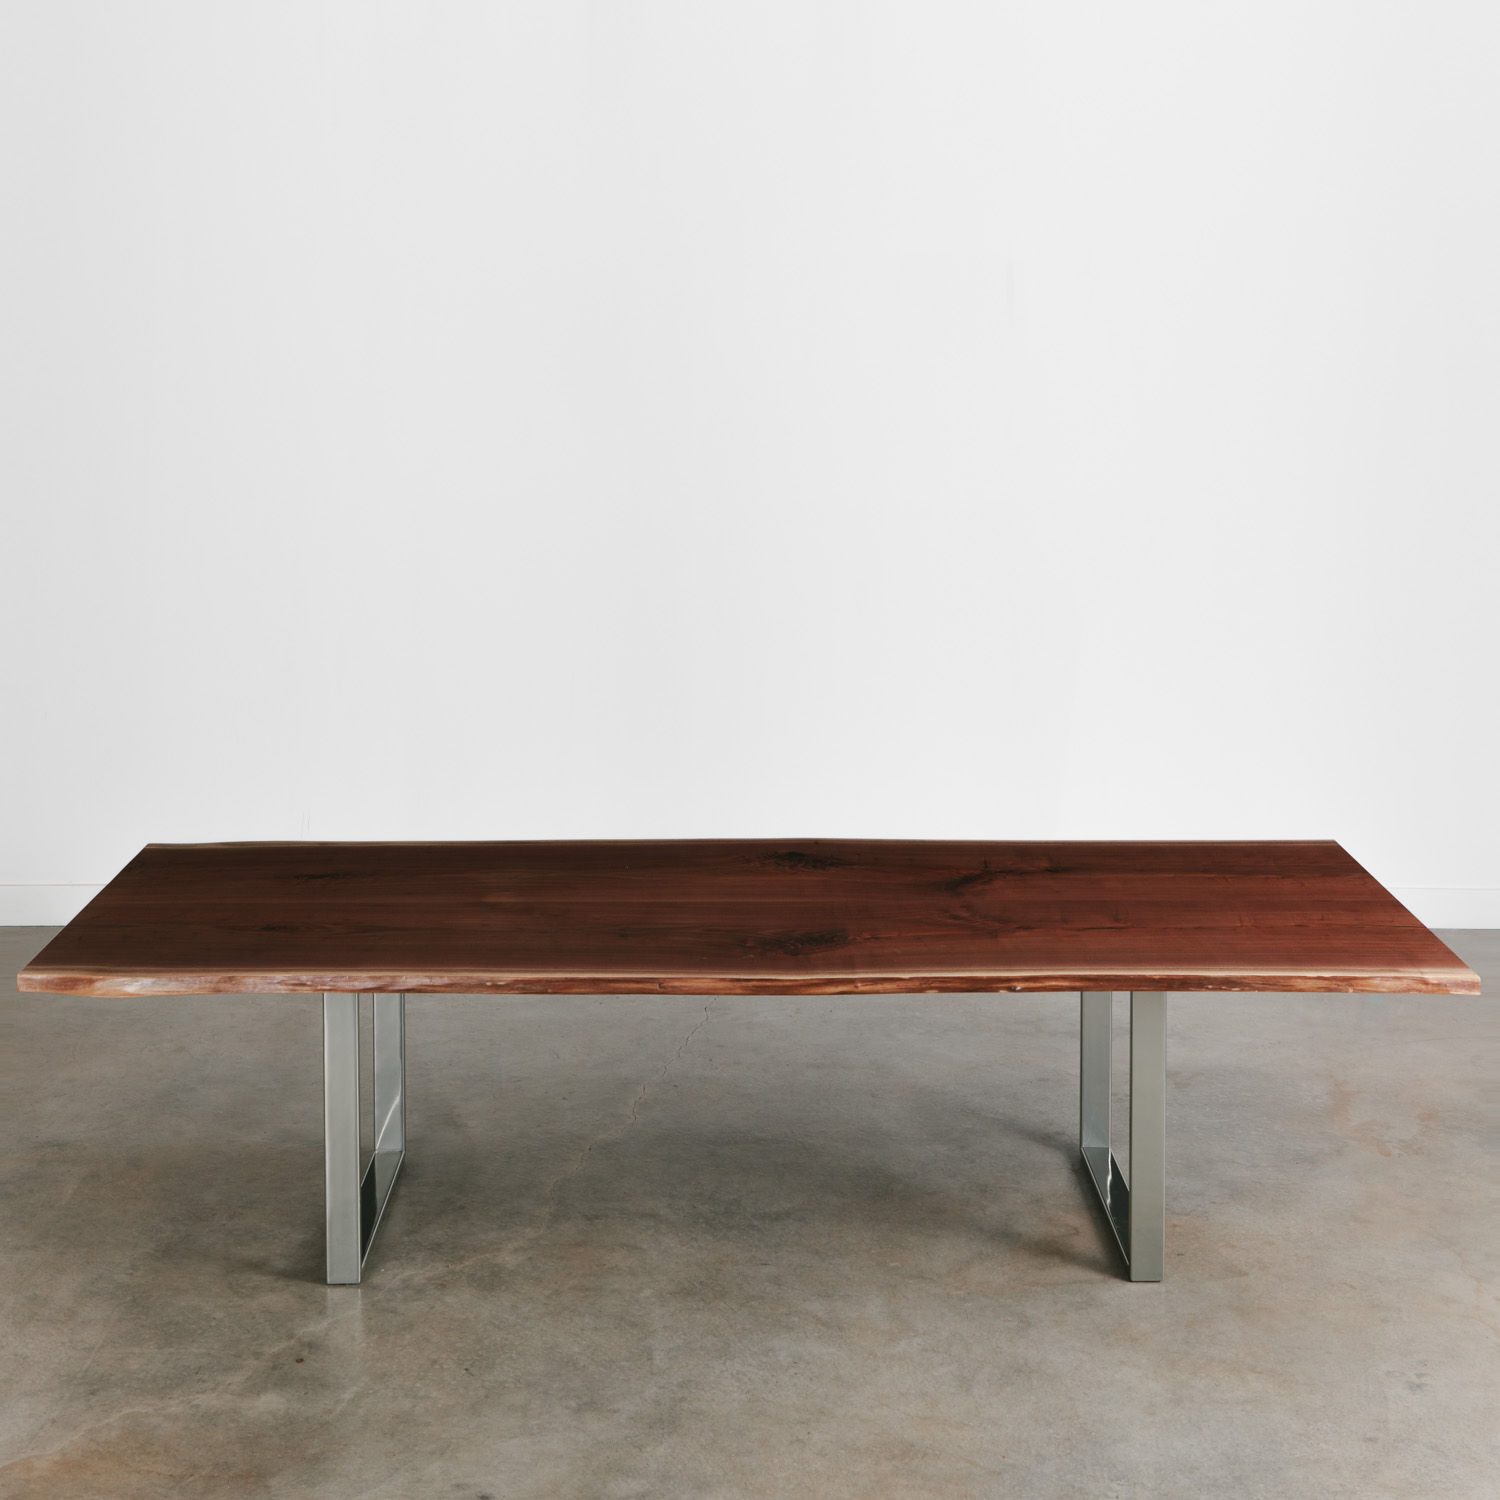 Live edge commercial conference table for coworking space  Elko